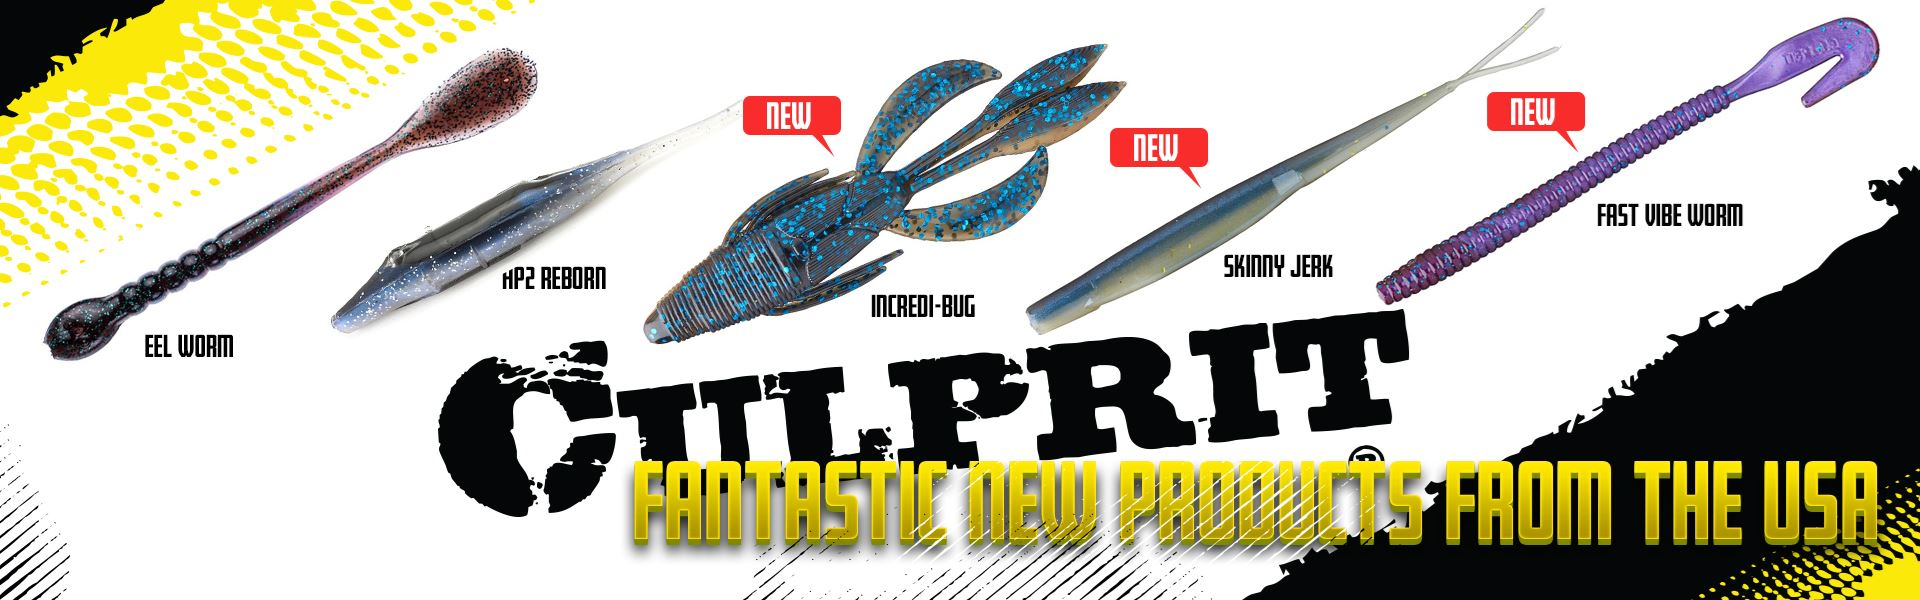 bass fishing, incredi-bug, pesca al bass, persico trota, spinning, casting, jerkbait